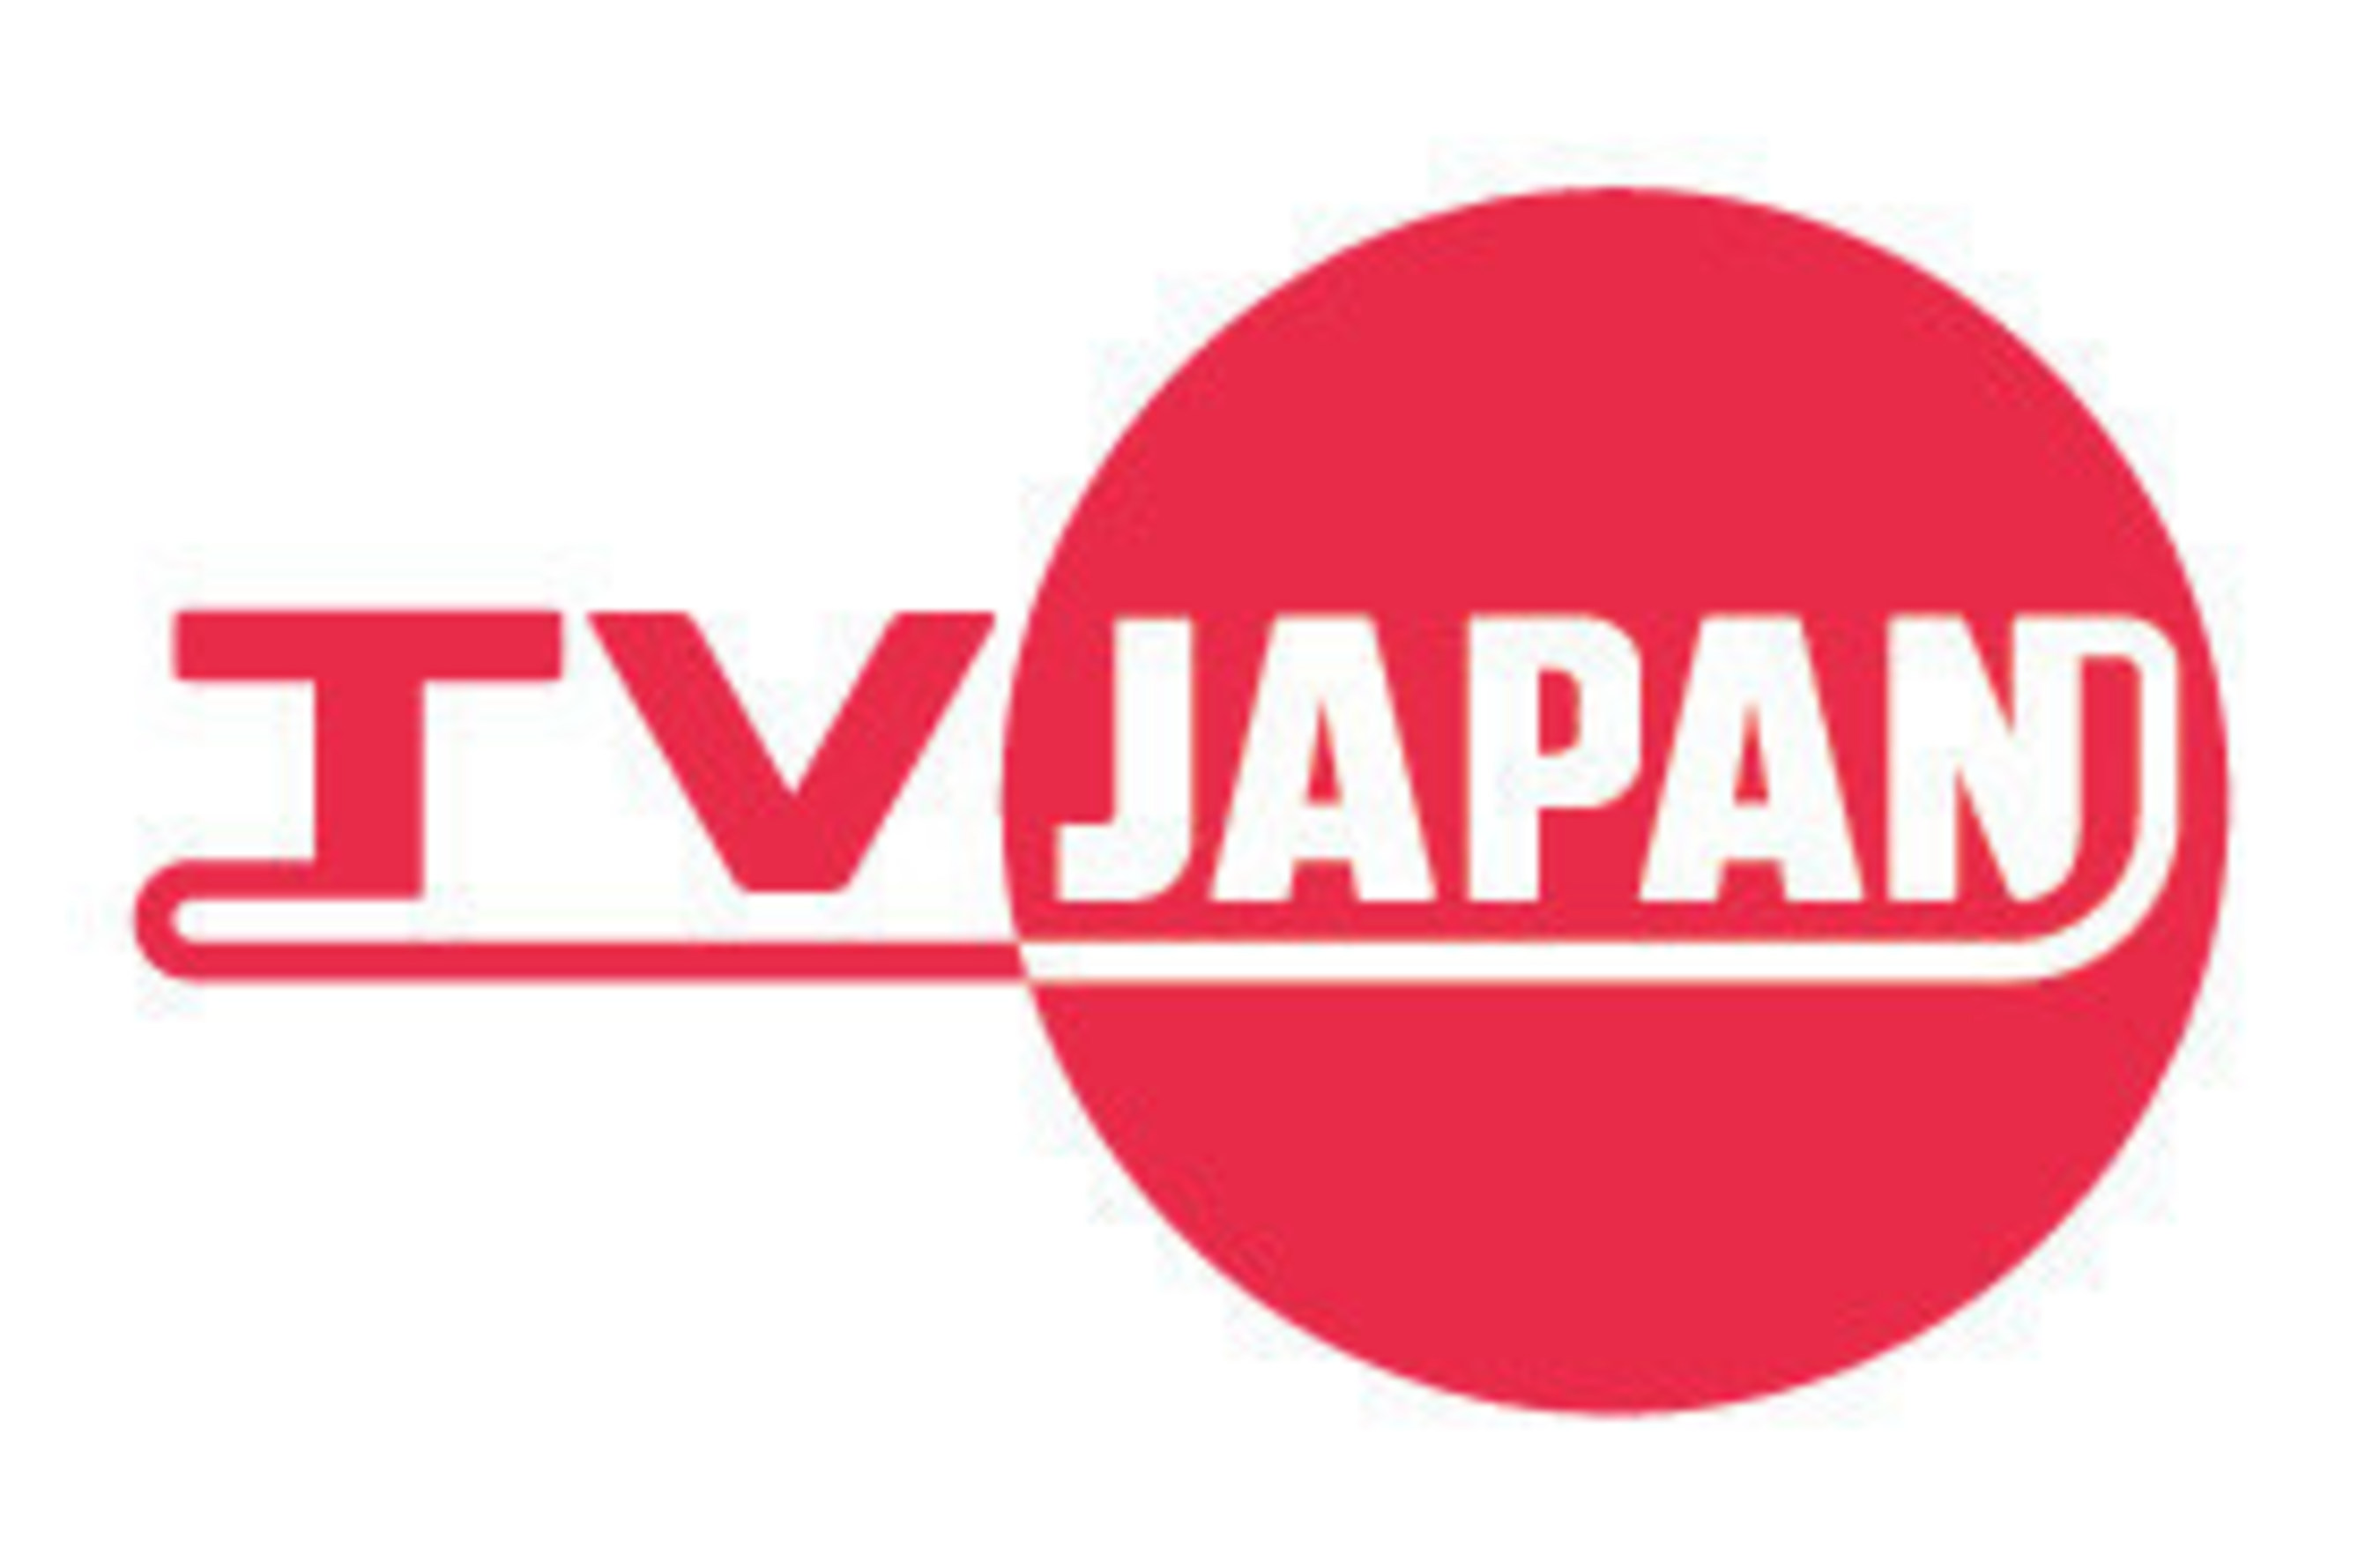 TV JAPAN offers 2-week Fall Free Preview starting 10/15